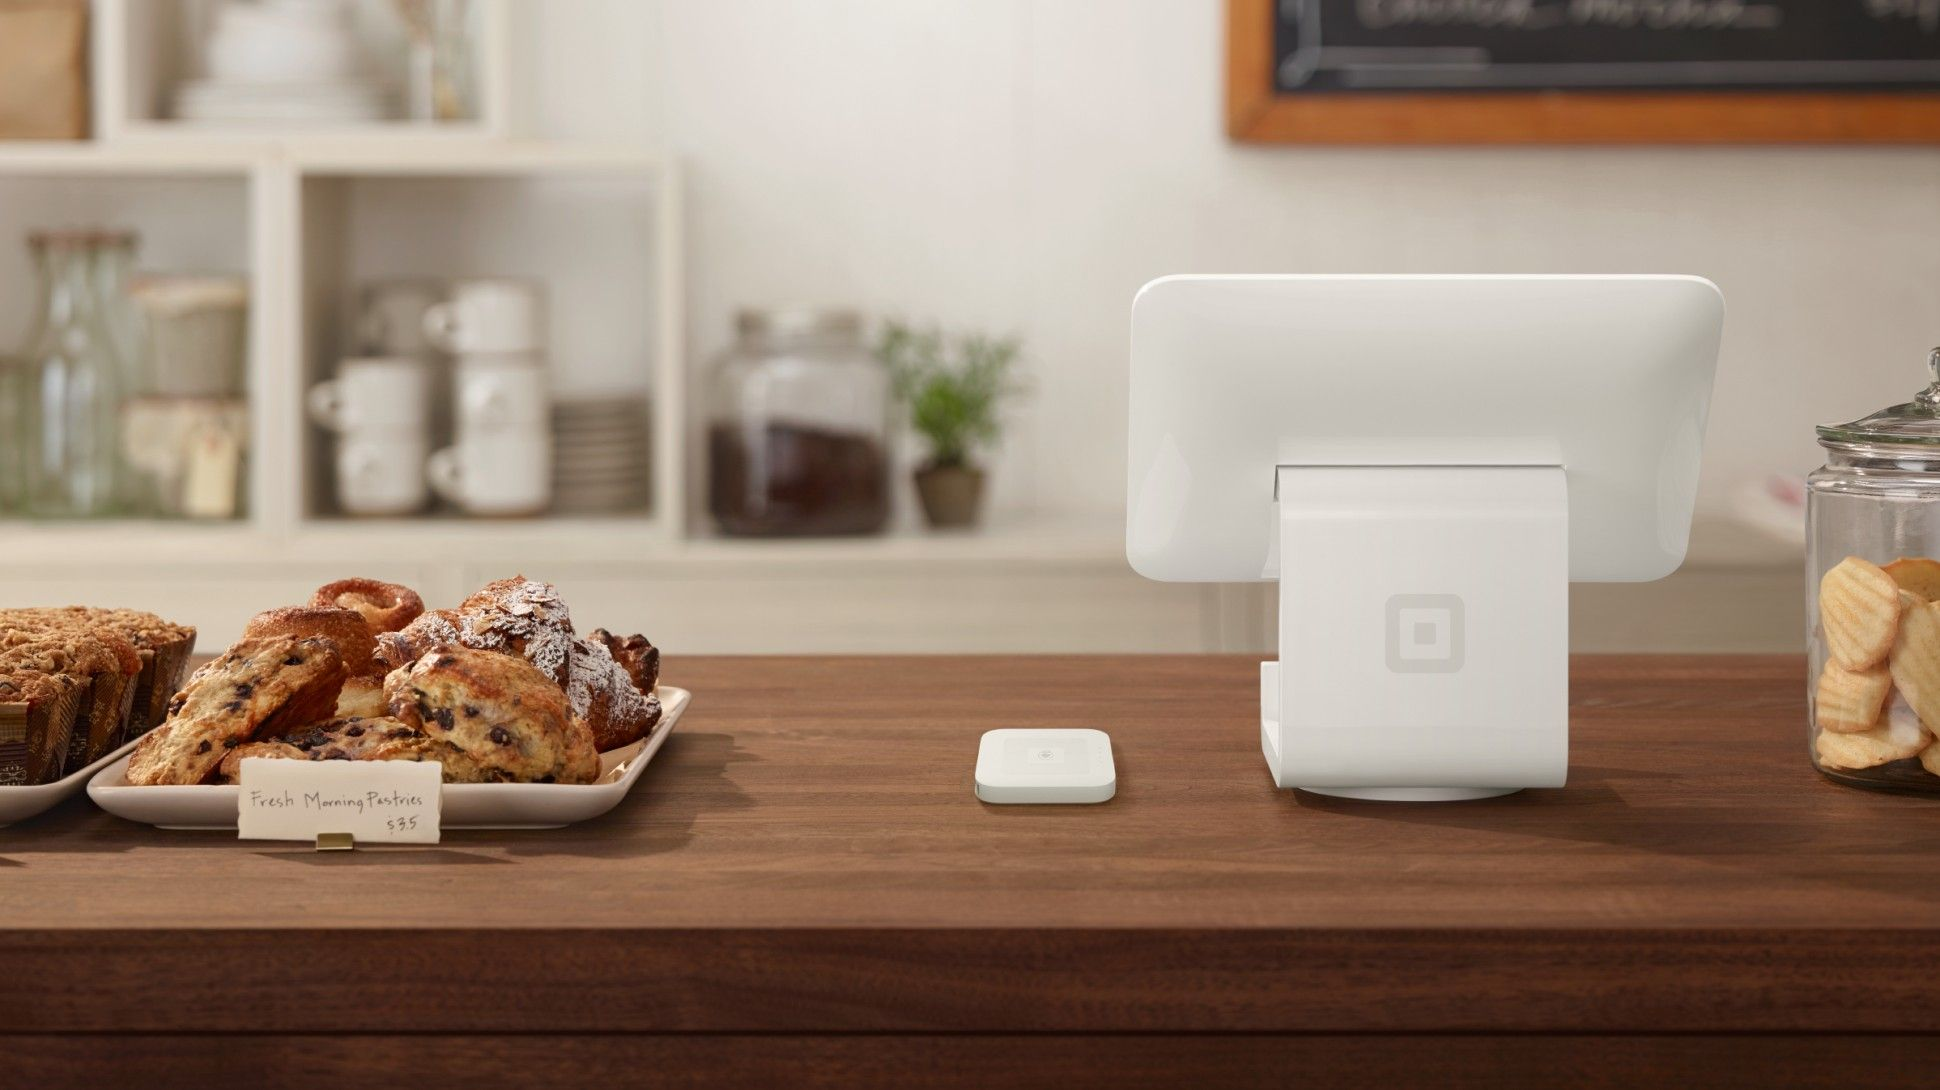 New credit card reader could help both square and apple in mobile new credit card reader could help both square and apple in mobile payments reheart Images